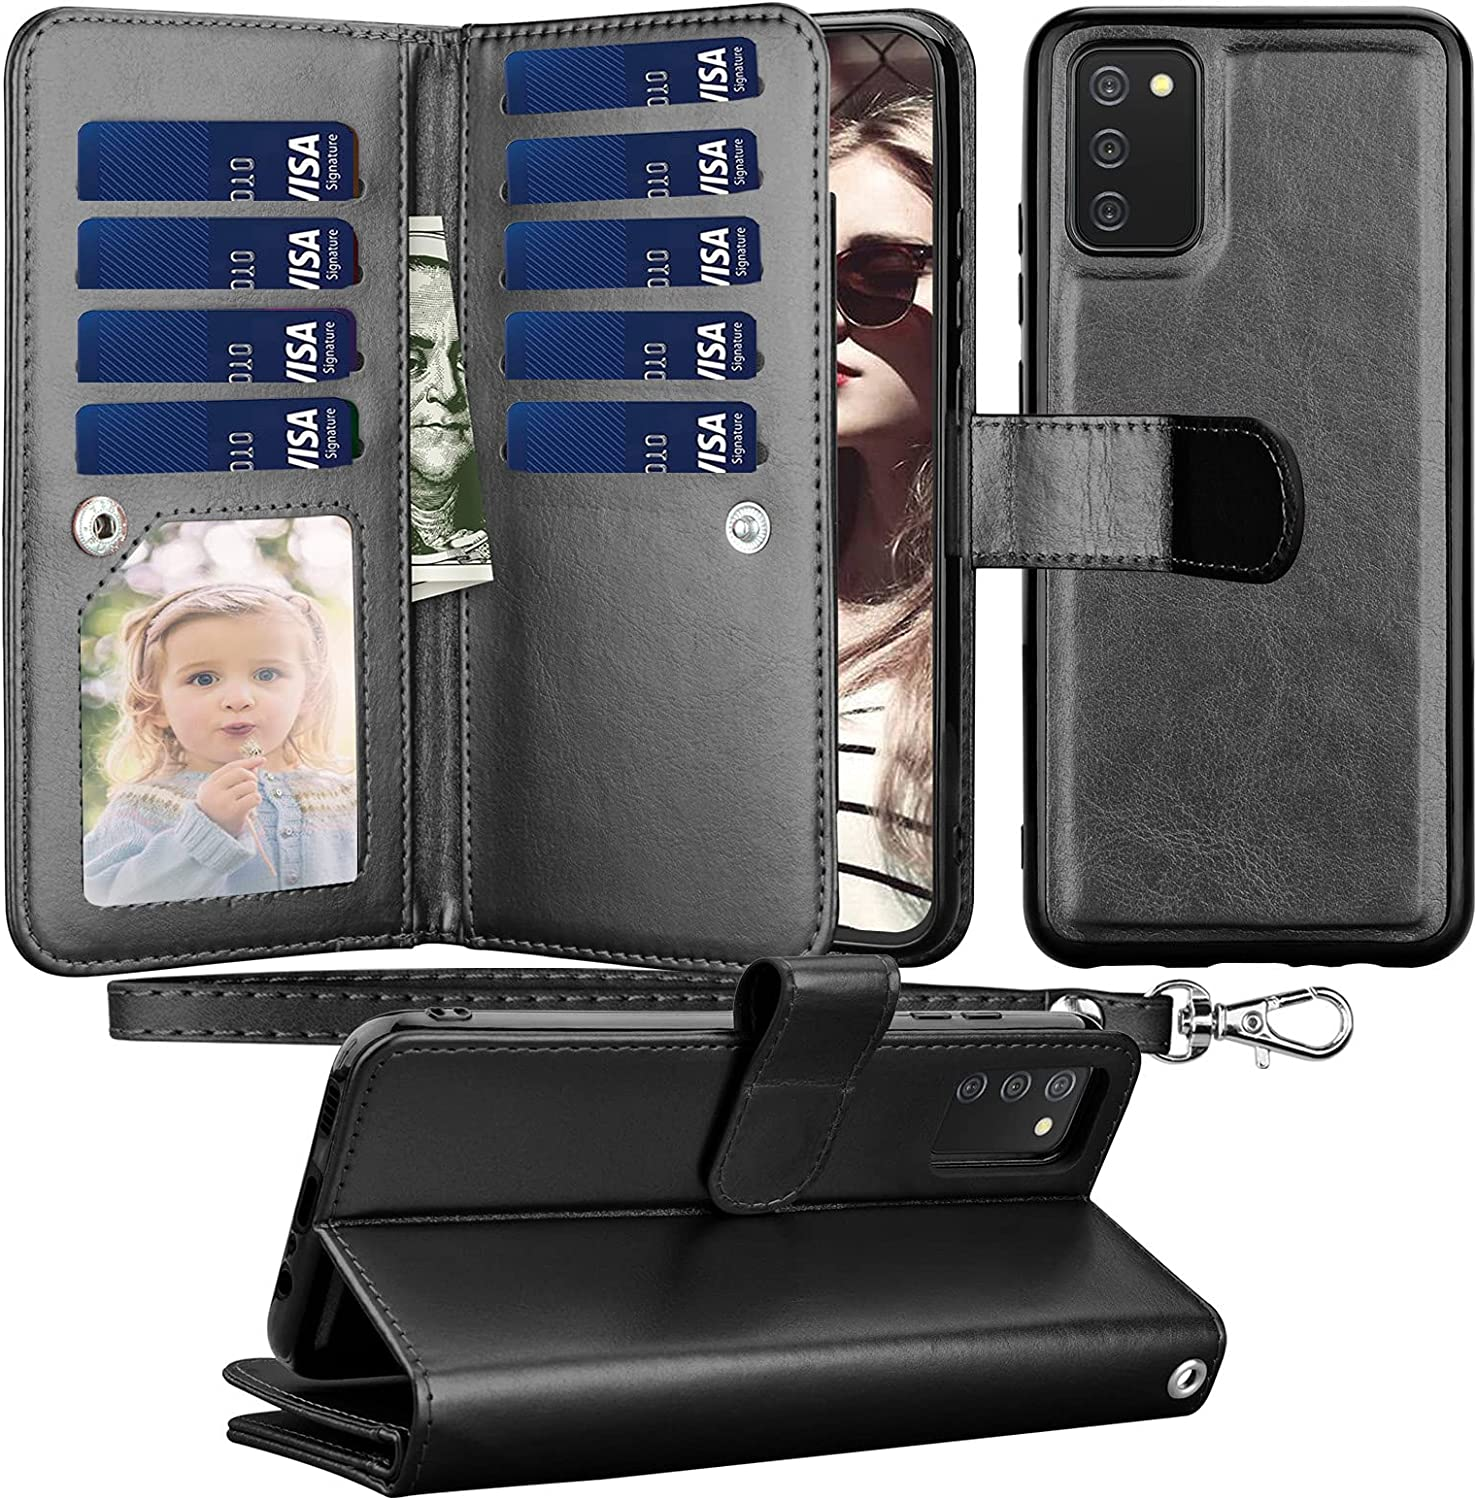 Thejex Galaxy A02S Case, for Samsung Galaxy A02S Wallet Case, PU Leather ID Credit Card Slots Holder Folio Flip [Detachable] Kickstand Magnetic Phone Cover & Lanyard for Samsung A02S 2021 -Black